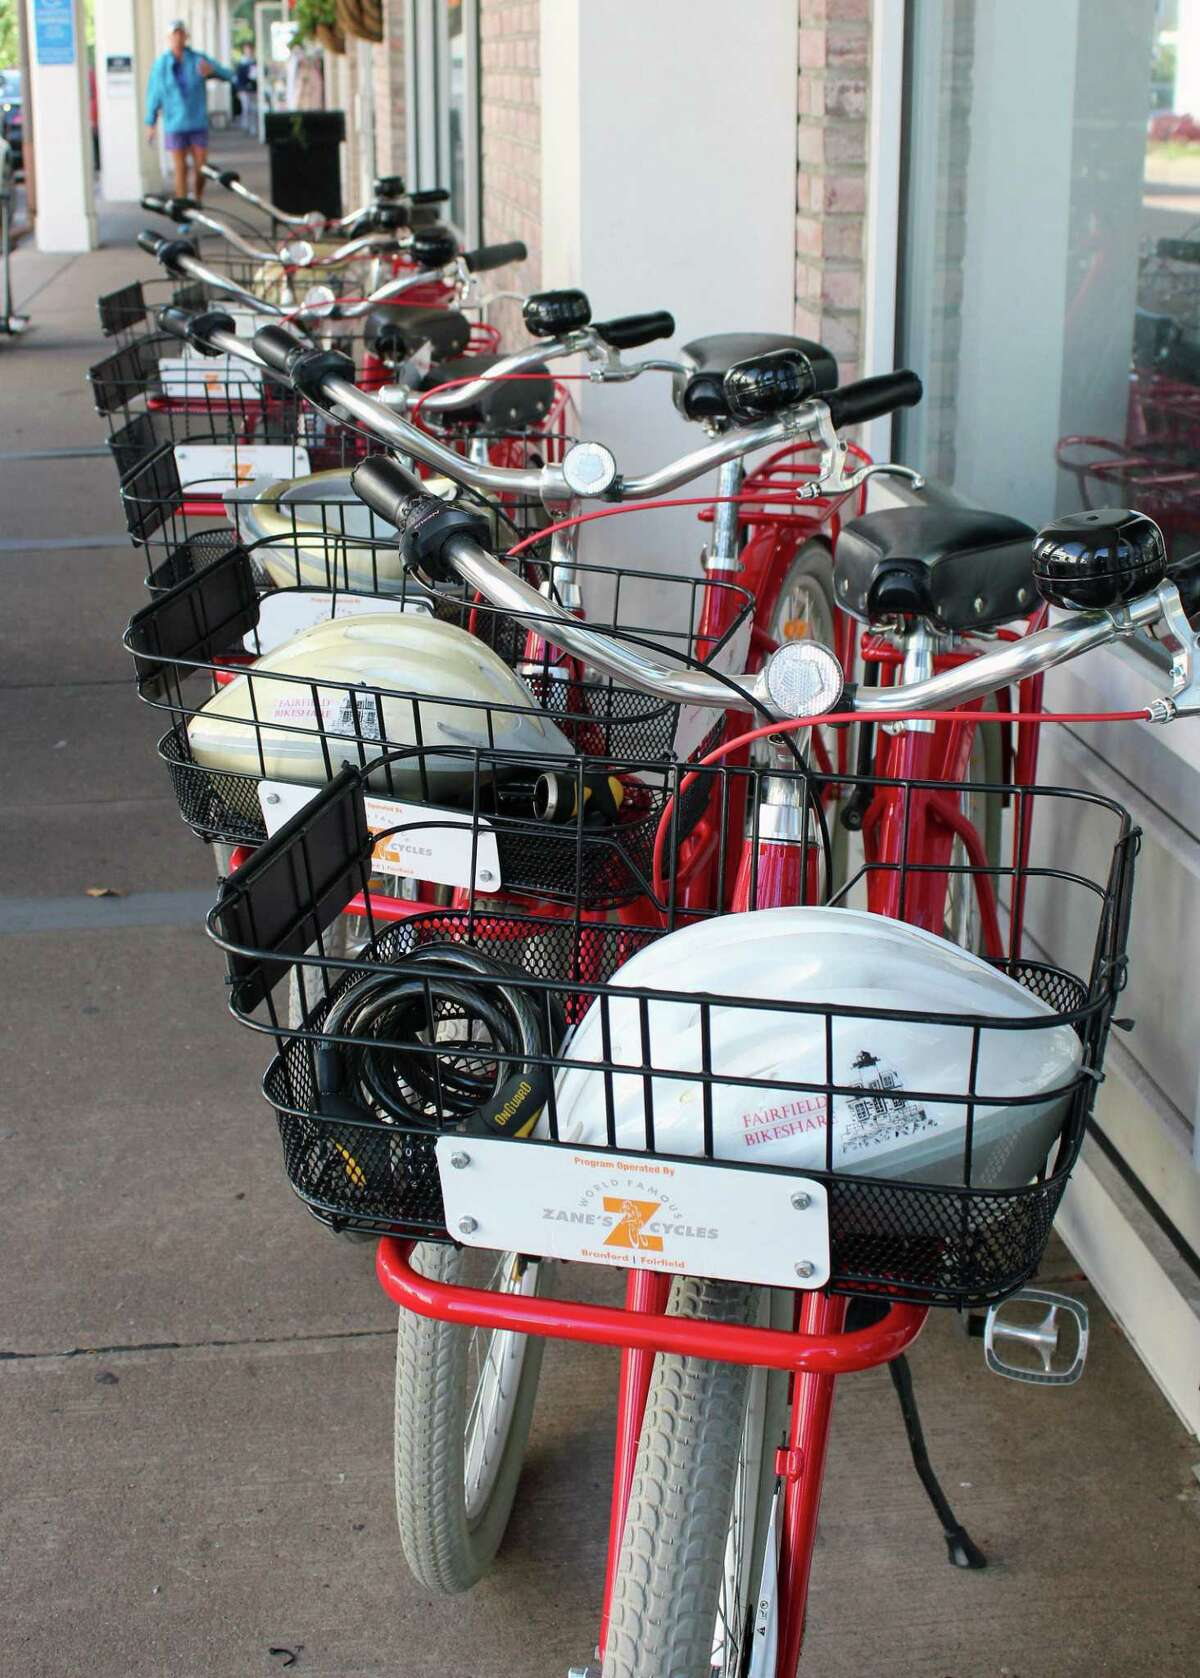 The town's three-year bike share pilot program will end next spring, and officials are surveying residents about participating in a regional program. Fairfield,CT. 9/26/18